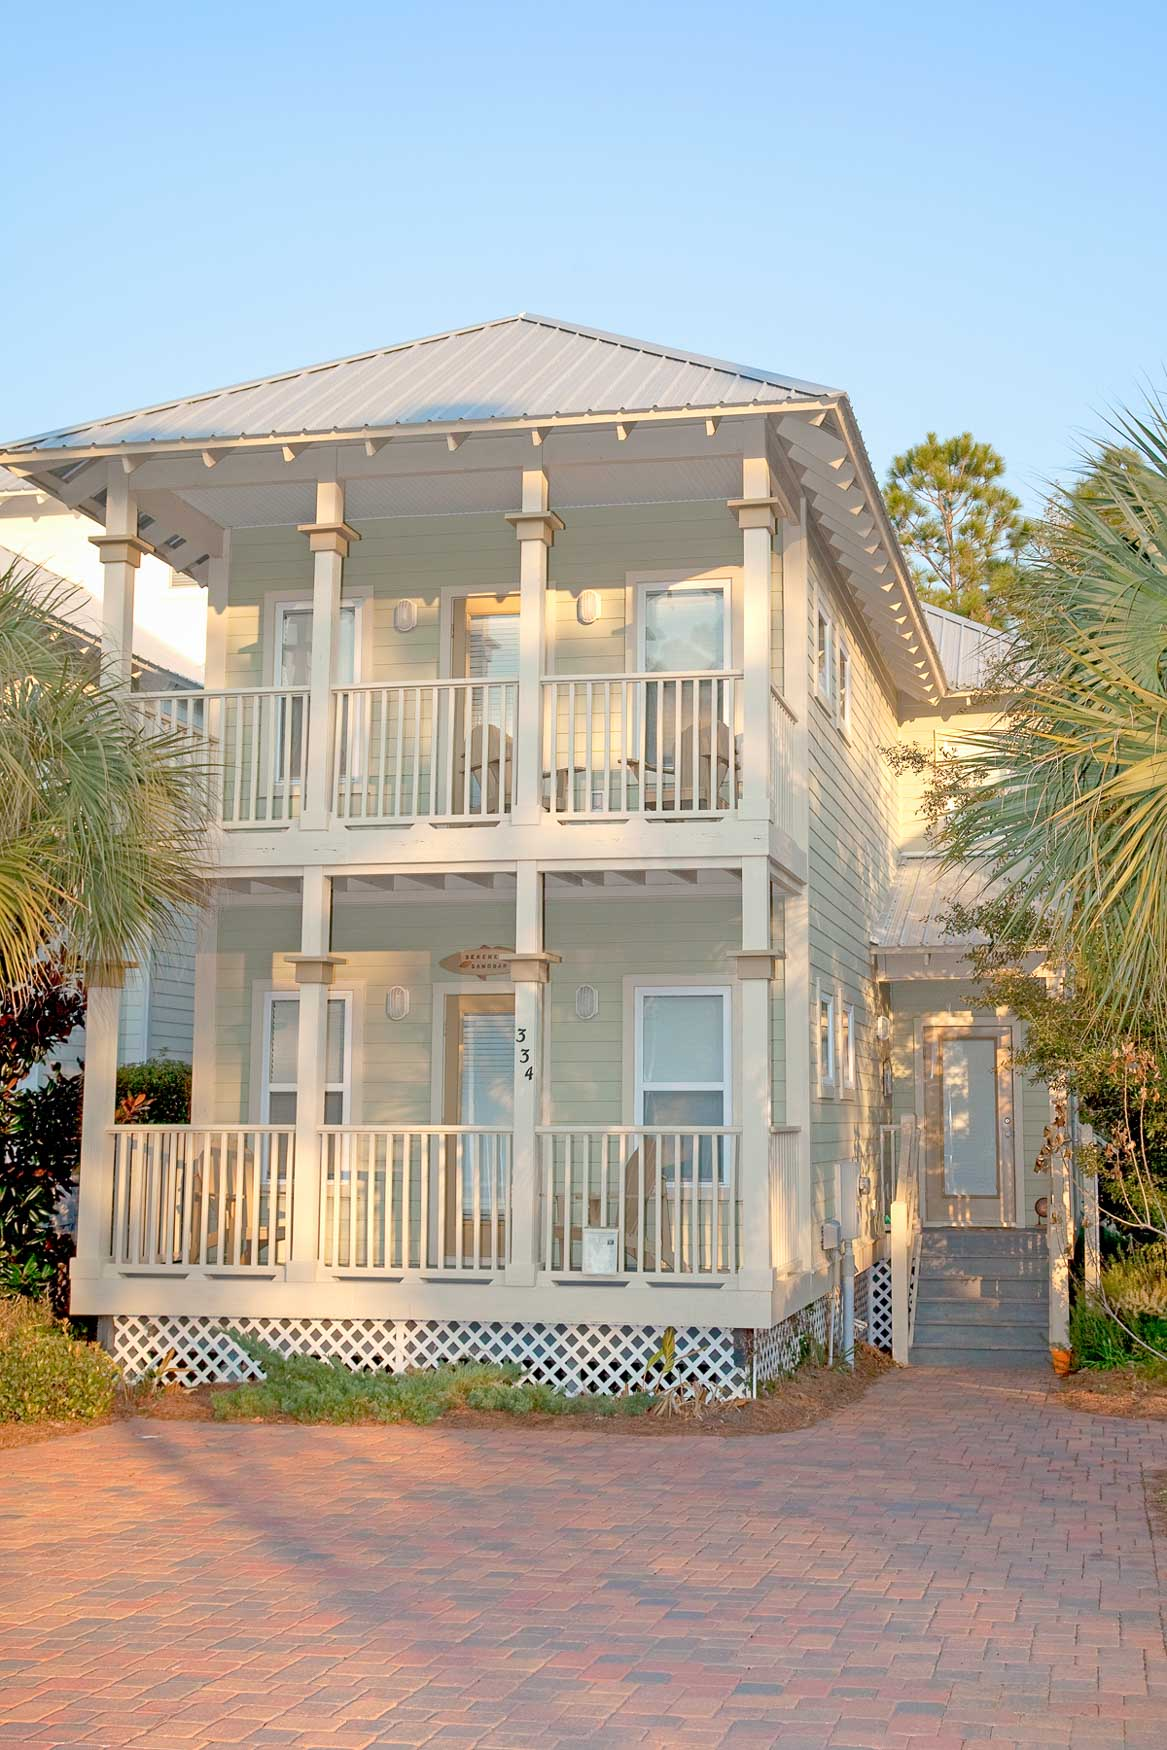 Exterior of nice two storie New Construction home in Old Florida Village on 30A.